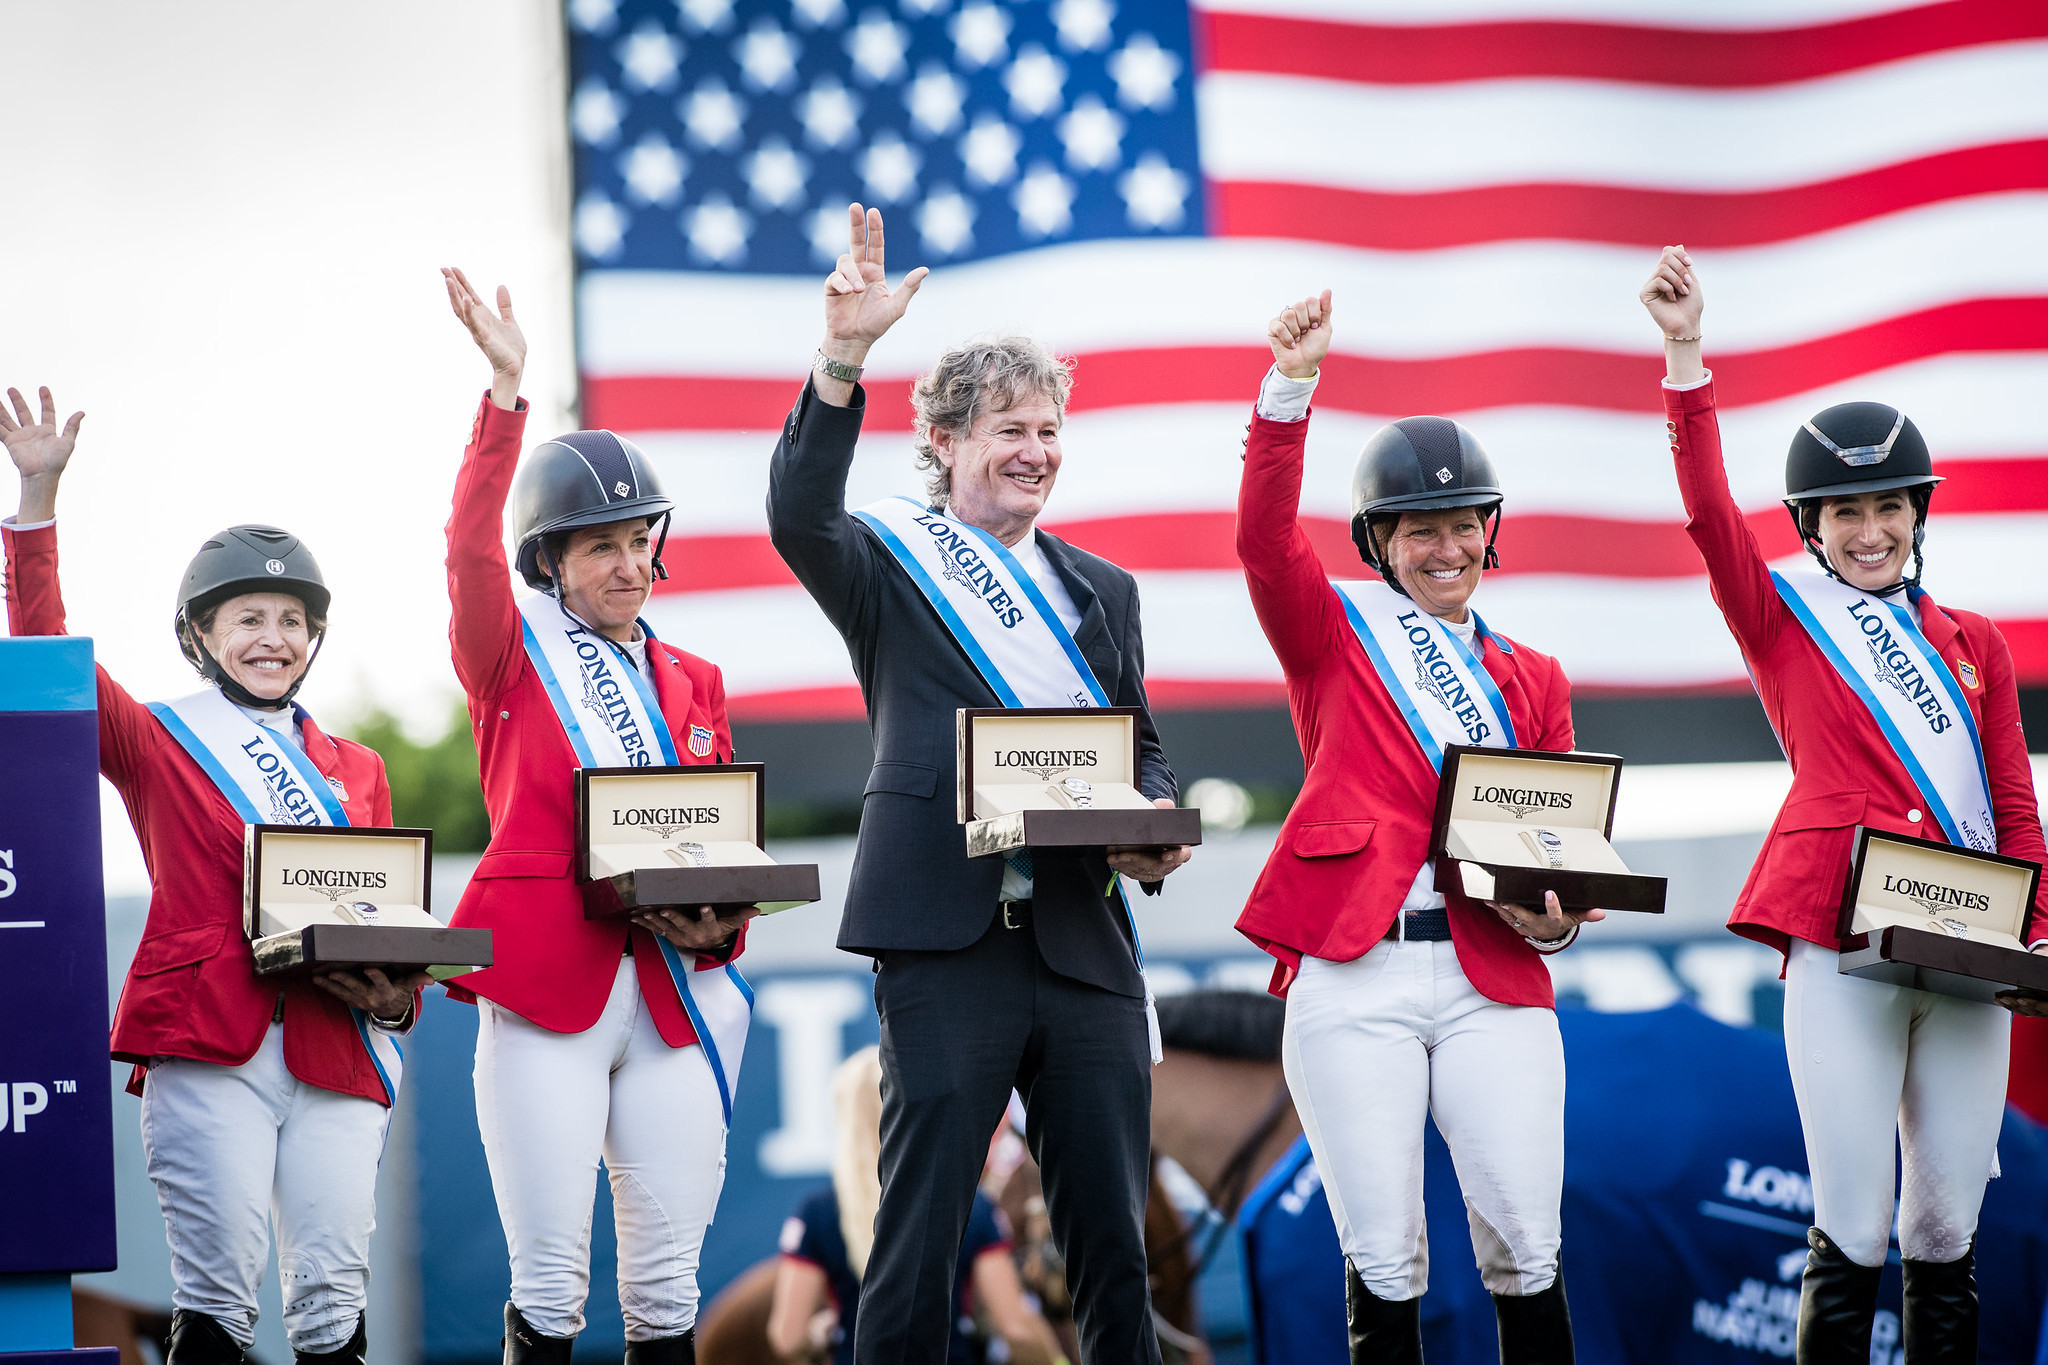 The victorious American team of, left to right, Margie Goldstein-Engle Laura Kraut, Robert Ridland, Beezie Madden and Jessica Springsteen ©FEI